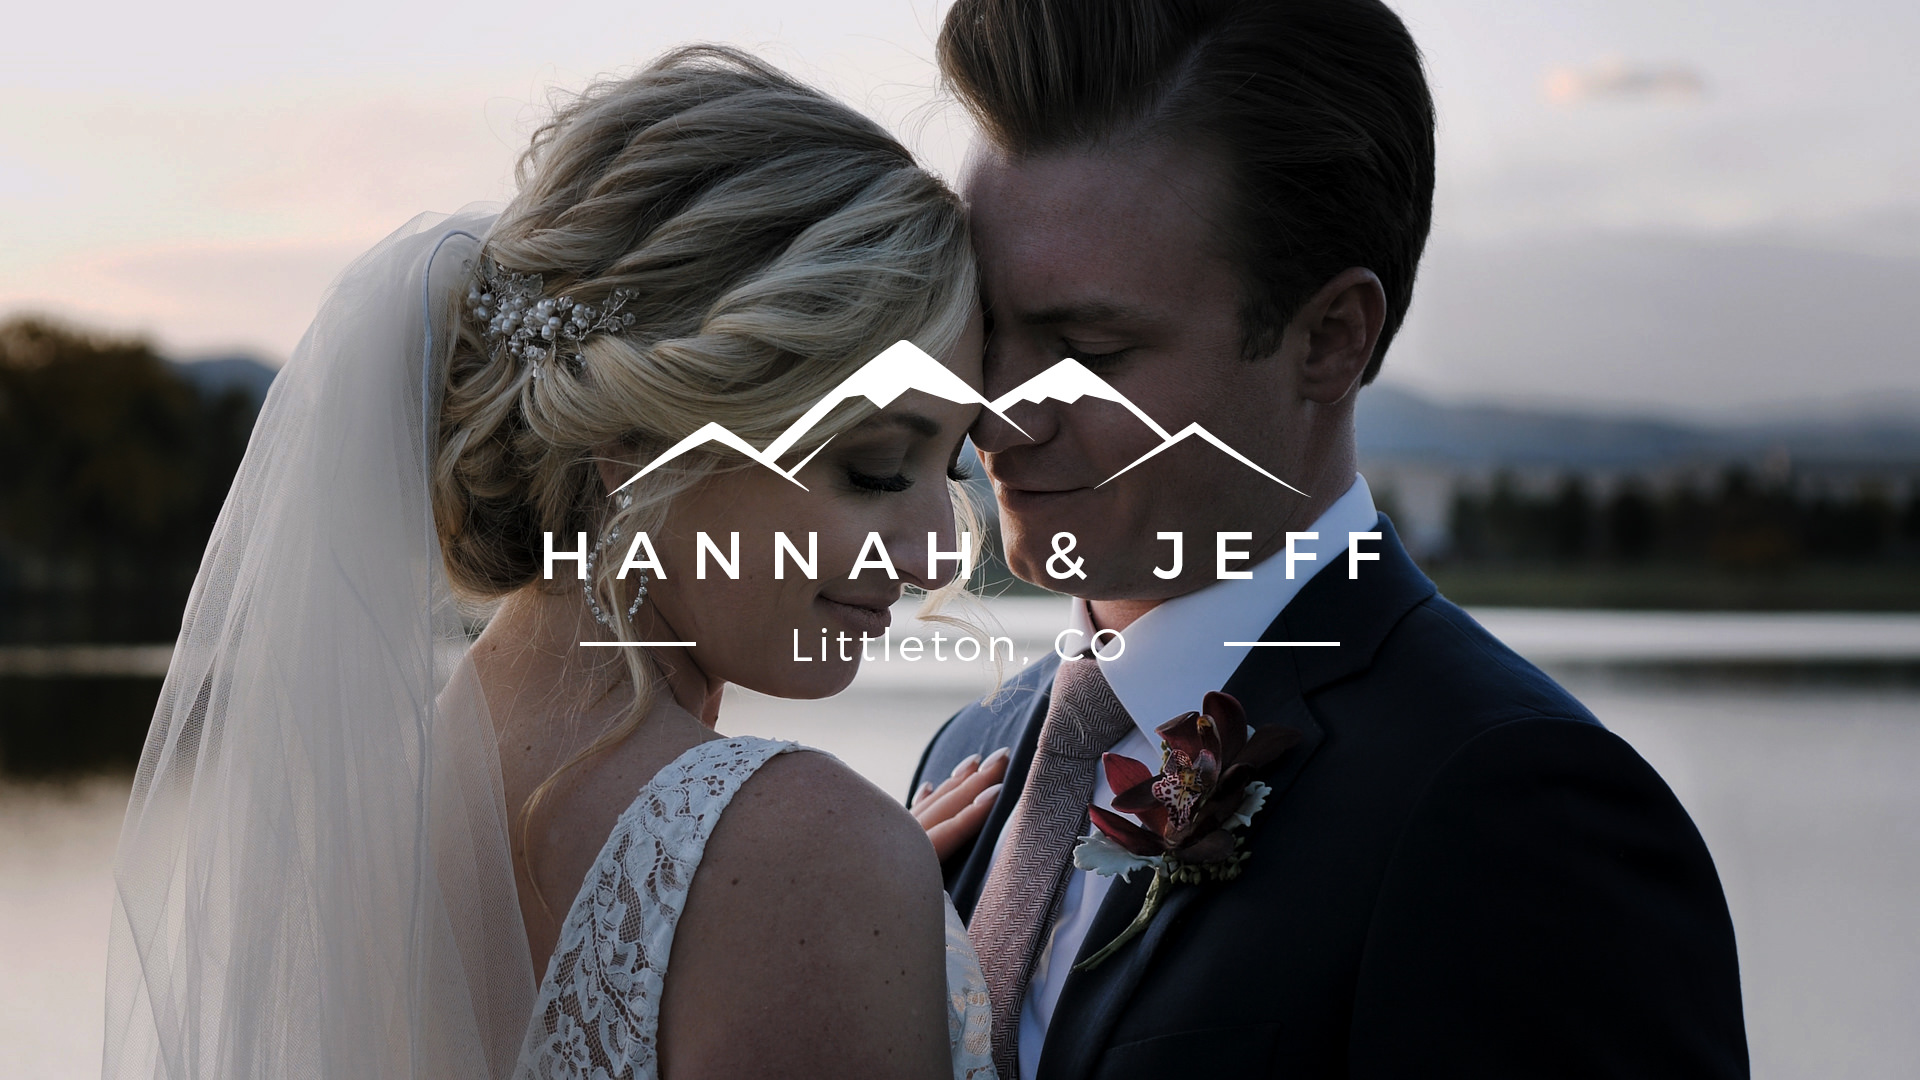 Hannah + Jeff | Littleton, Colorado | The Barn at Raccoon Creek